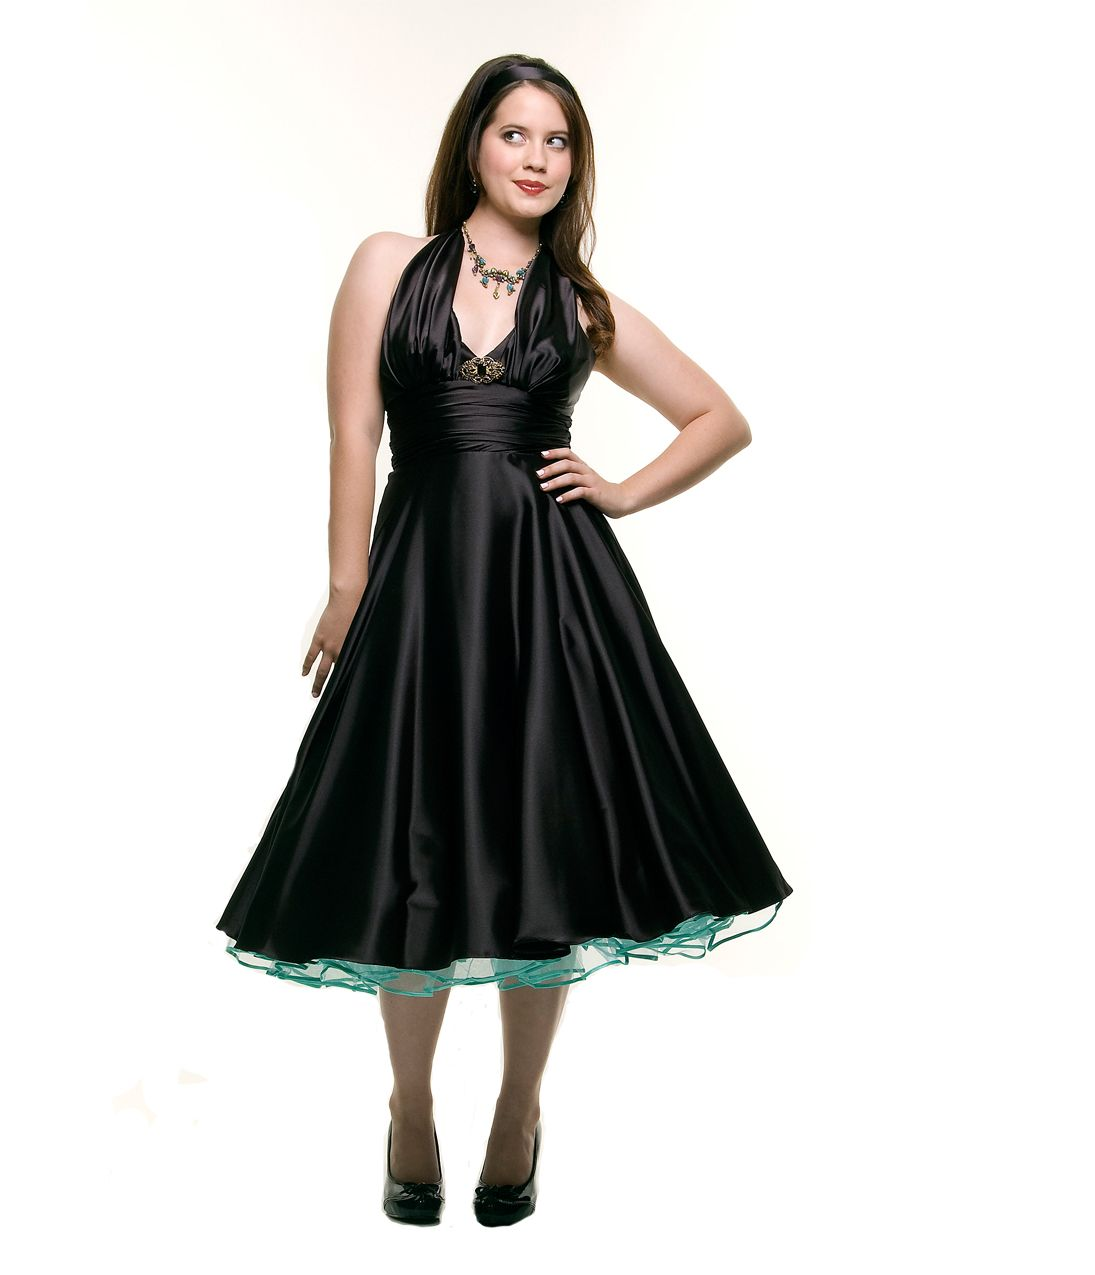 Us style homecoming dresses black marilyn satin halter prom